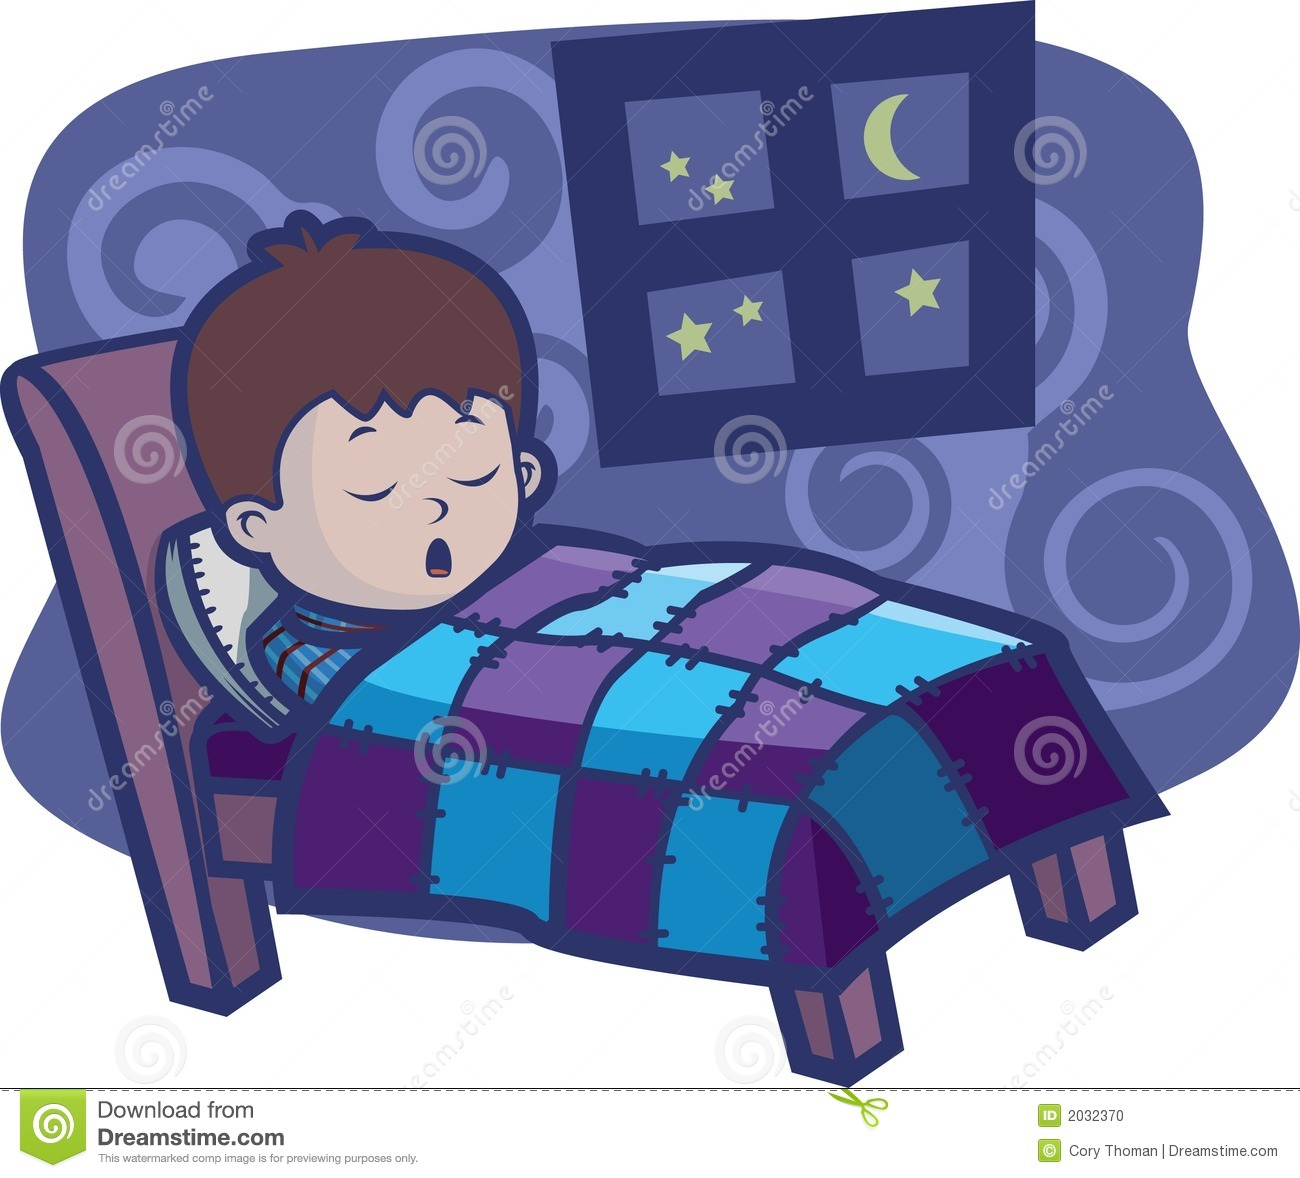 Child dreaming in bed